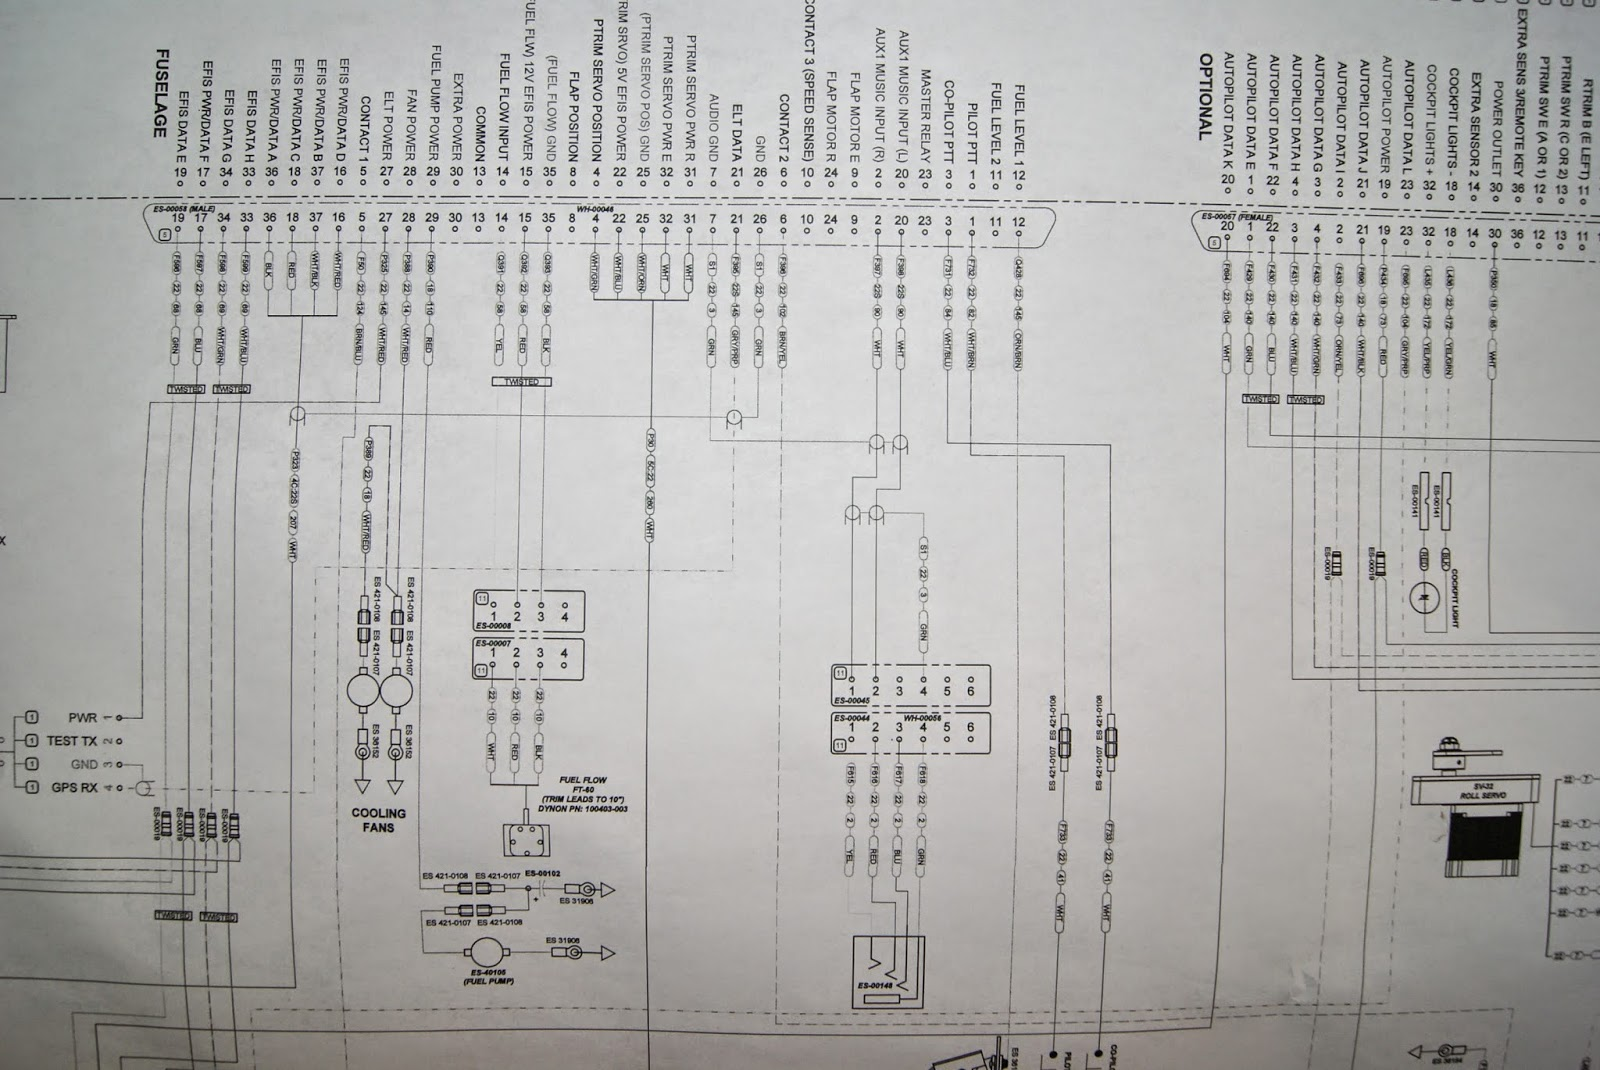 Jack Wiring Diagram Furthermore 1 4 Quot Stereo Headphone Jack Wiring